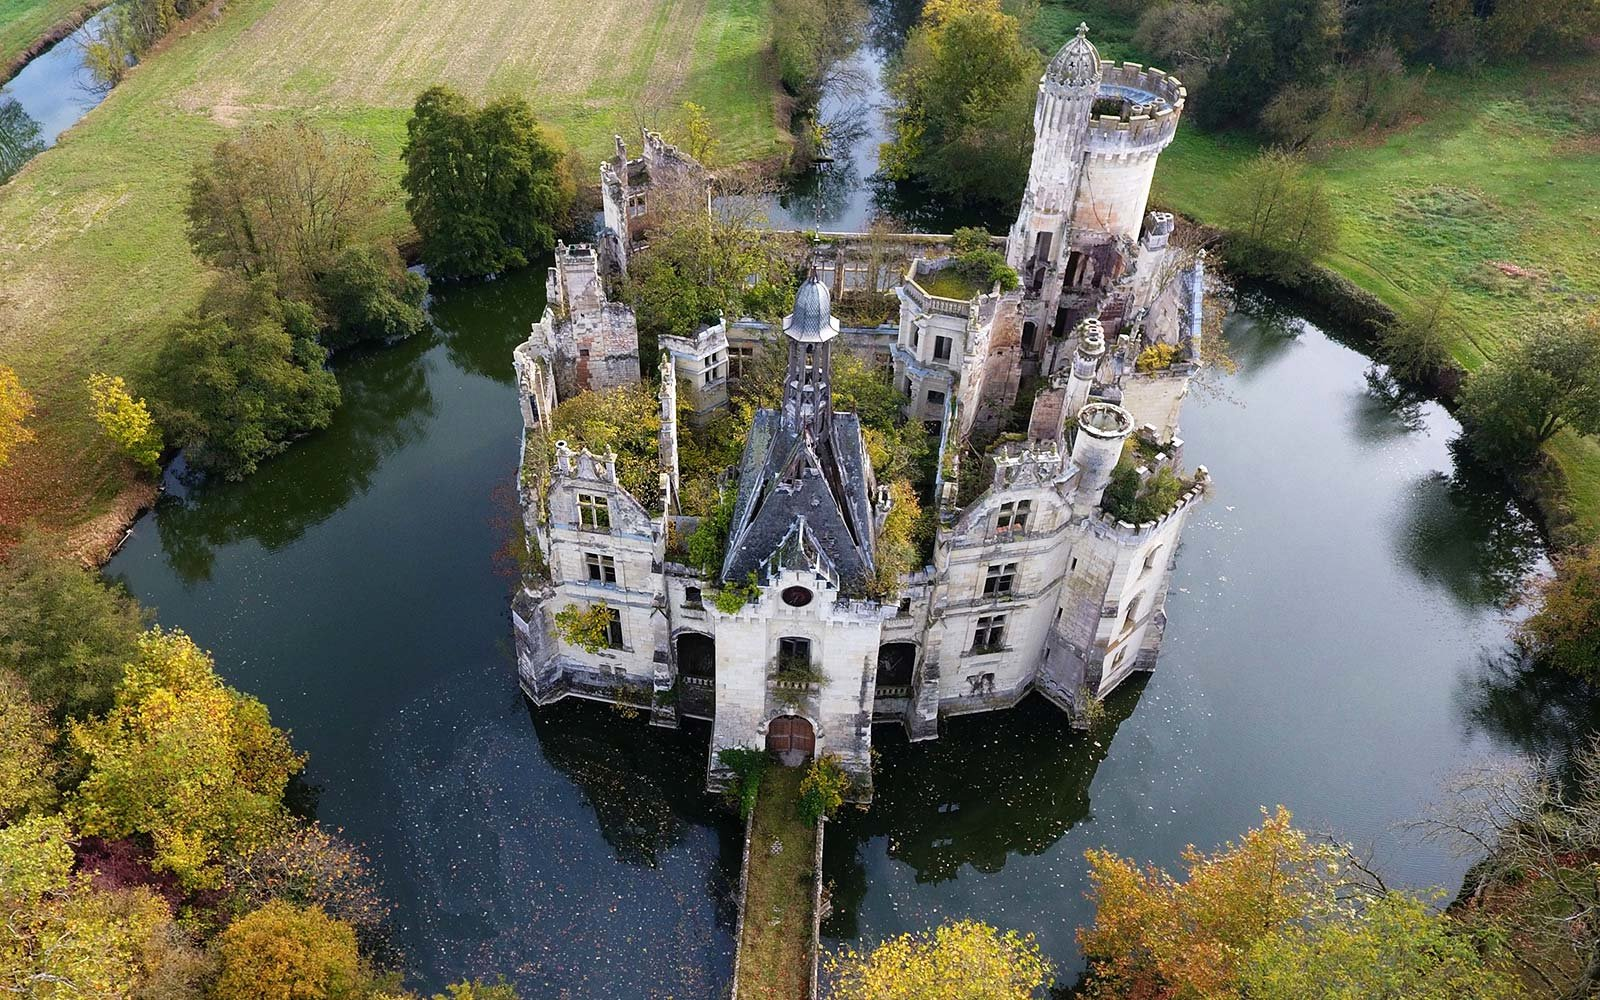 7400 strangers scrape together 500000 euros to buy historic French castle